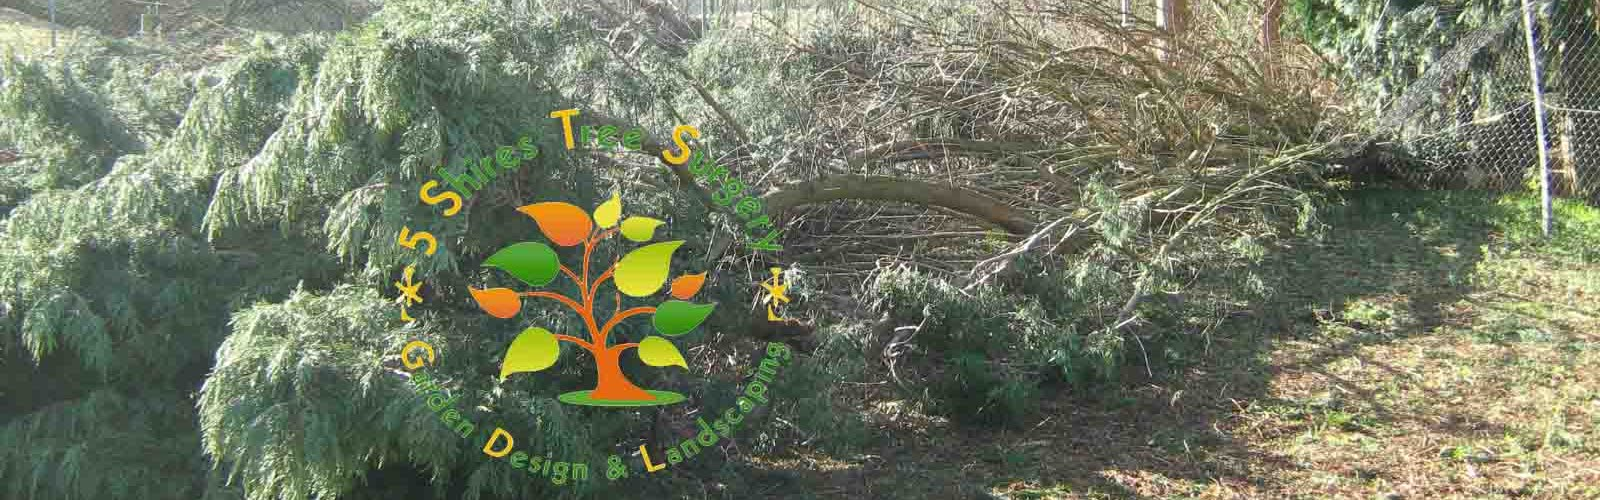 Expert Tree Surgeon West Midlands